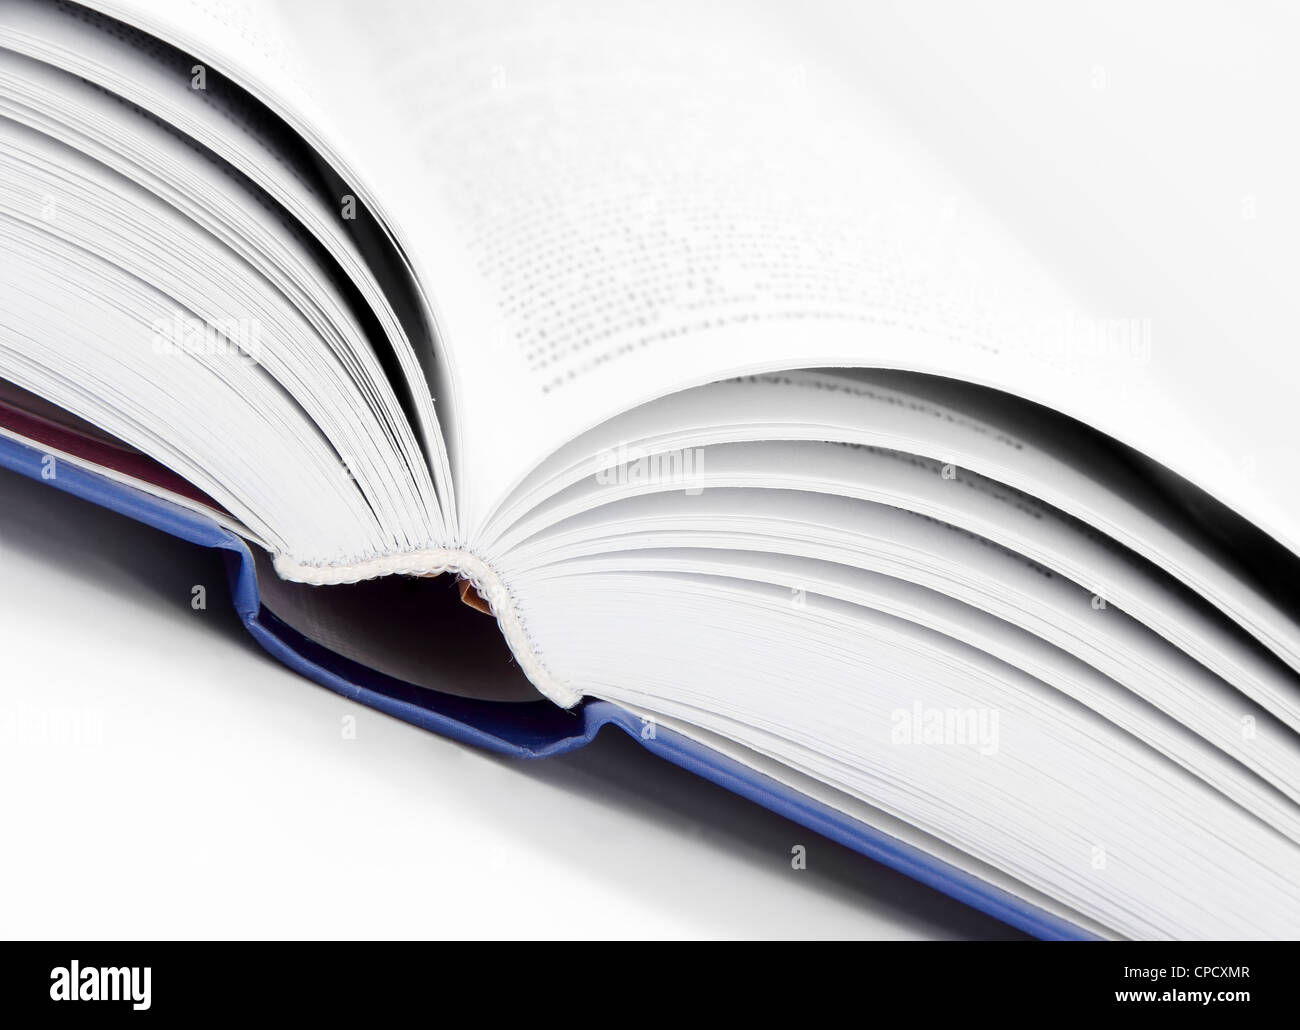 Close Up Open Book in White and Blue - Stock Image